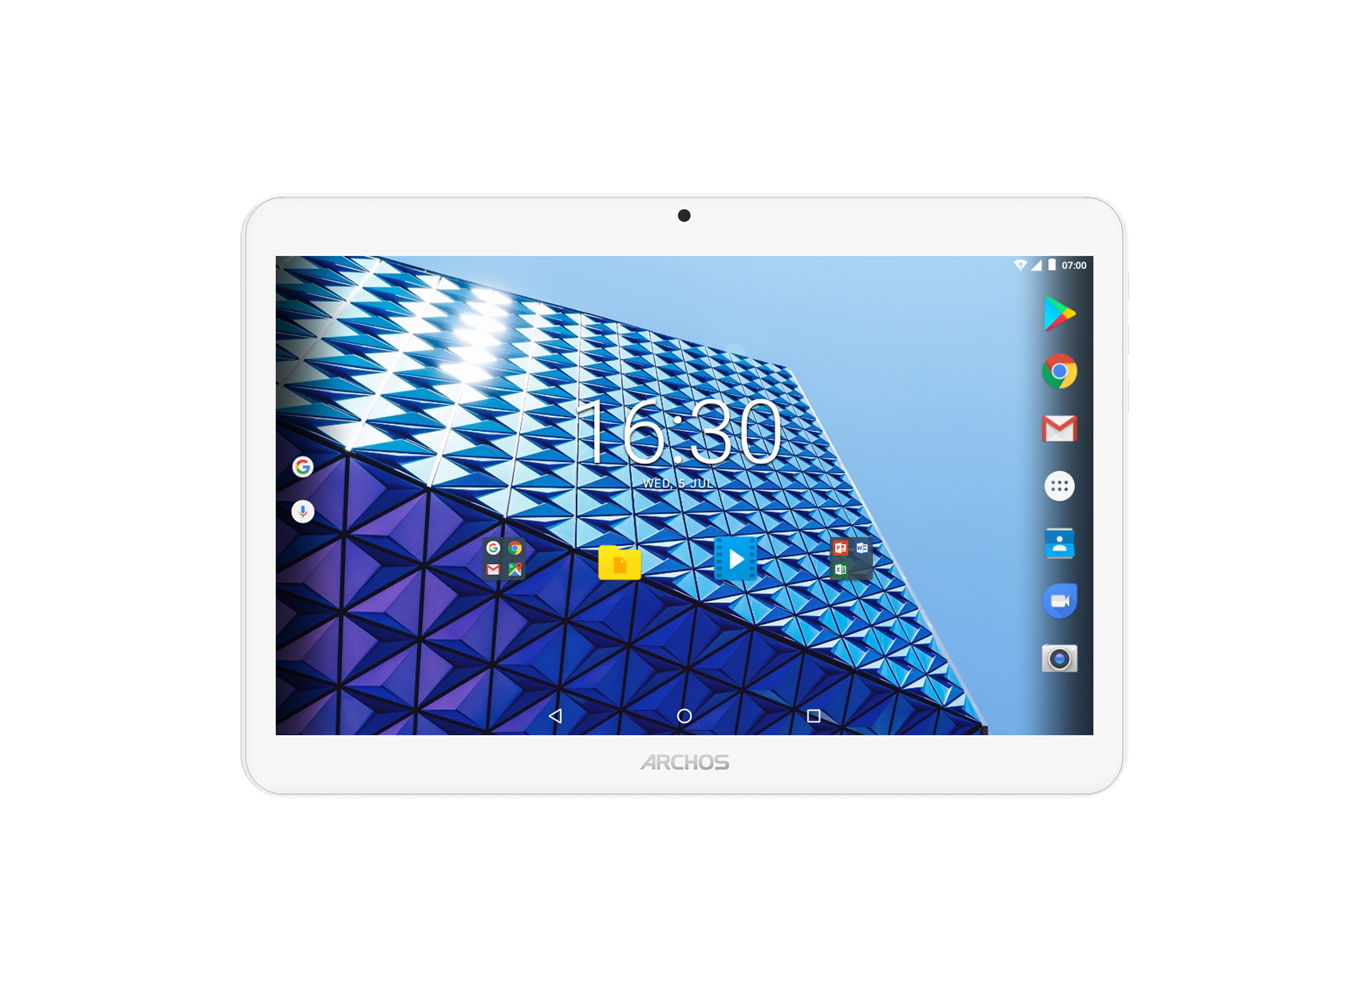 ARCHOS Access 101 3G V2, Tablets - Overview